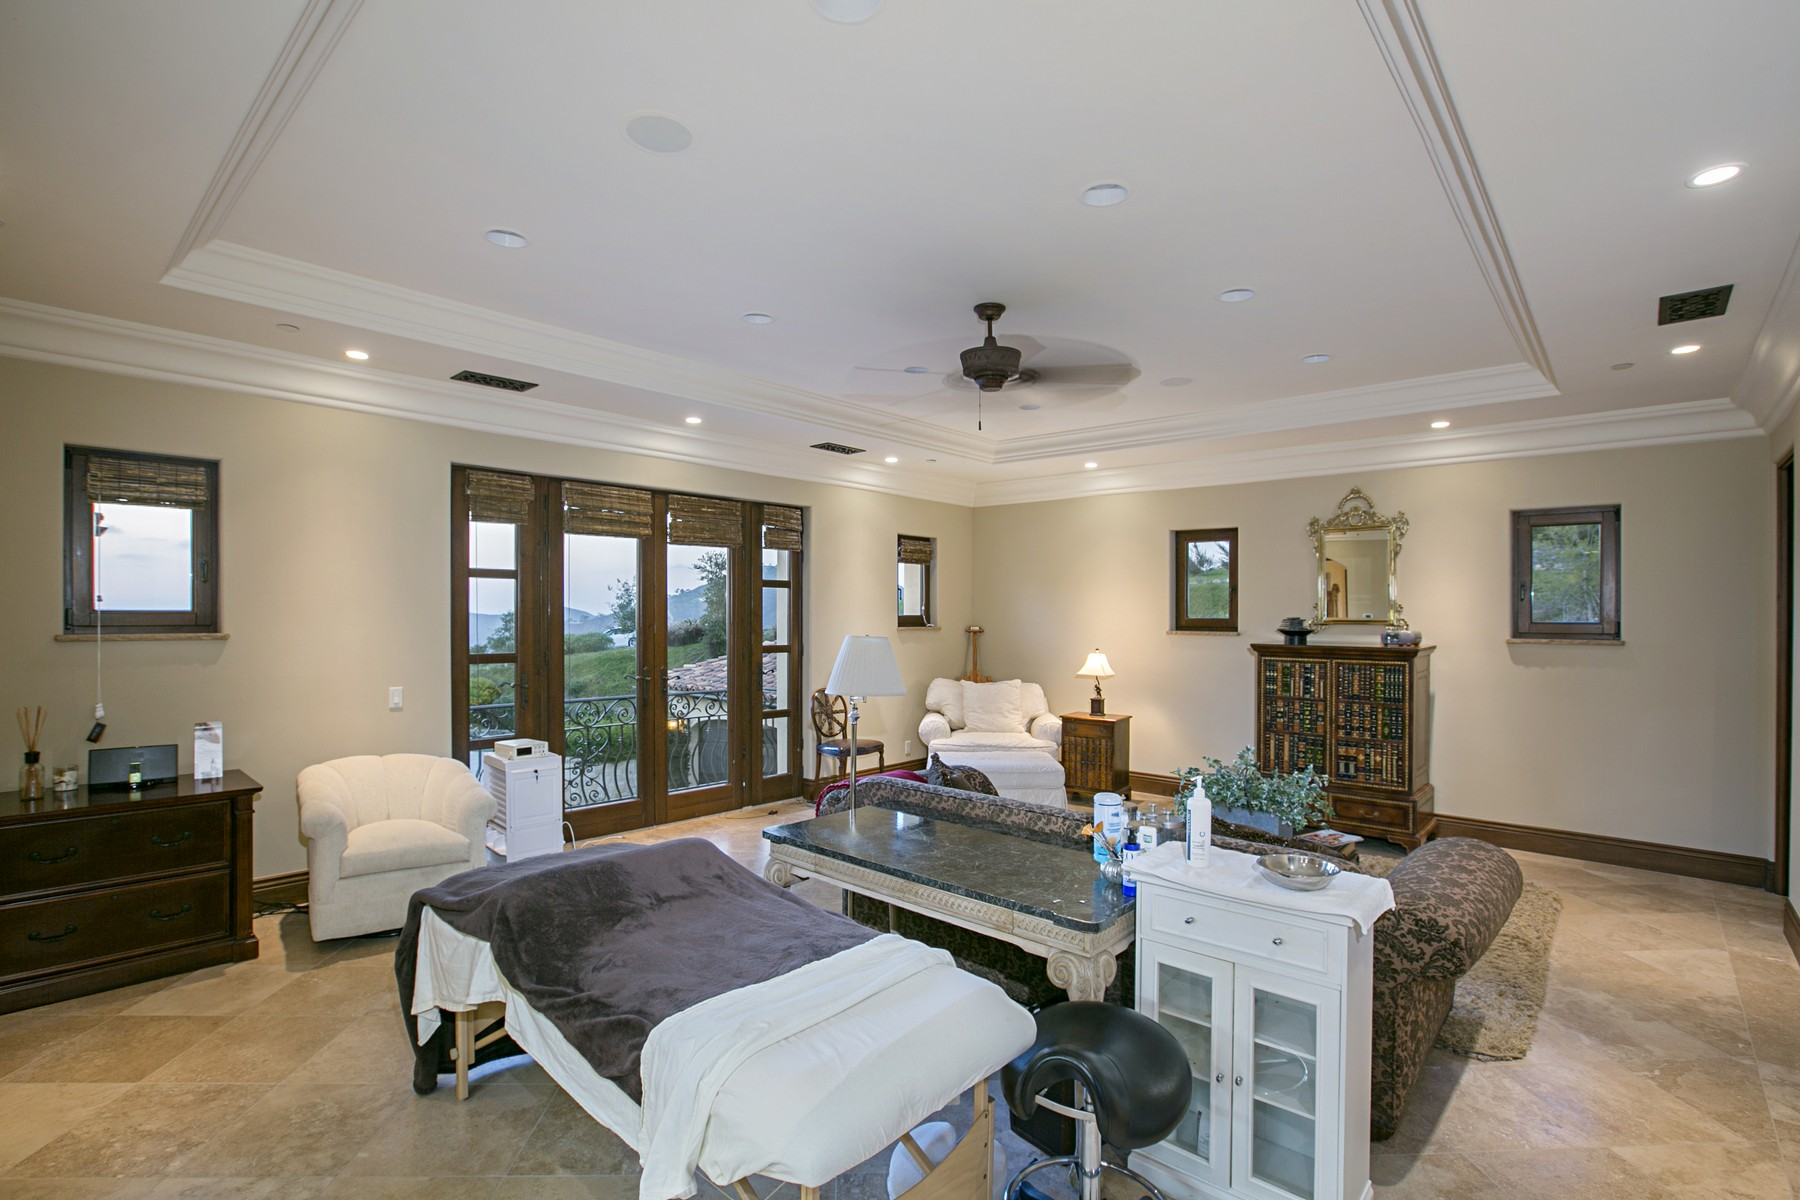 Additional photo for property listing at 7667 Camino de Arriba  Rancho Santa Fe, Калифорния 92067 Соединенные Штаты